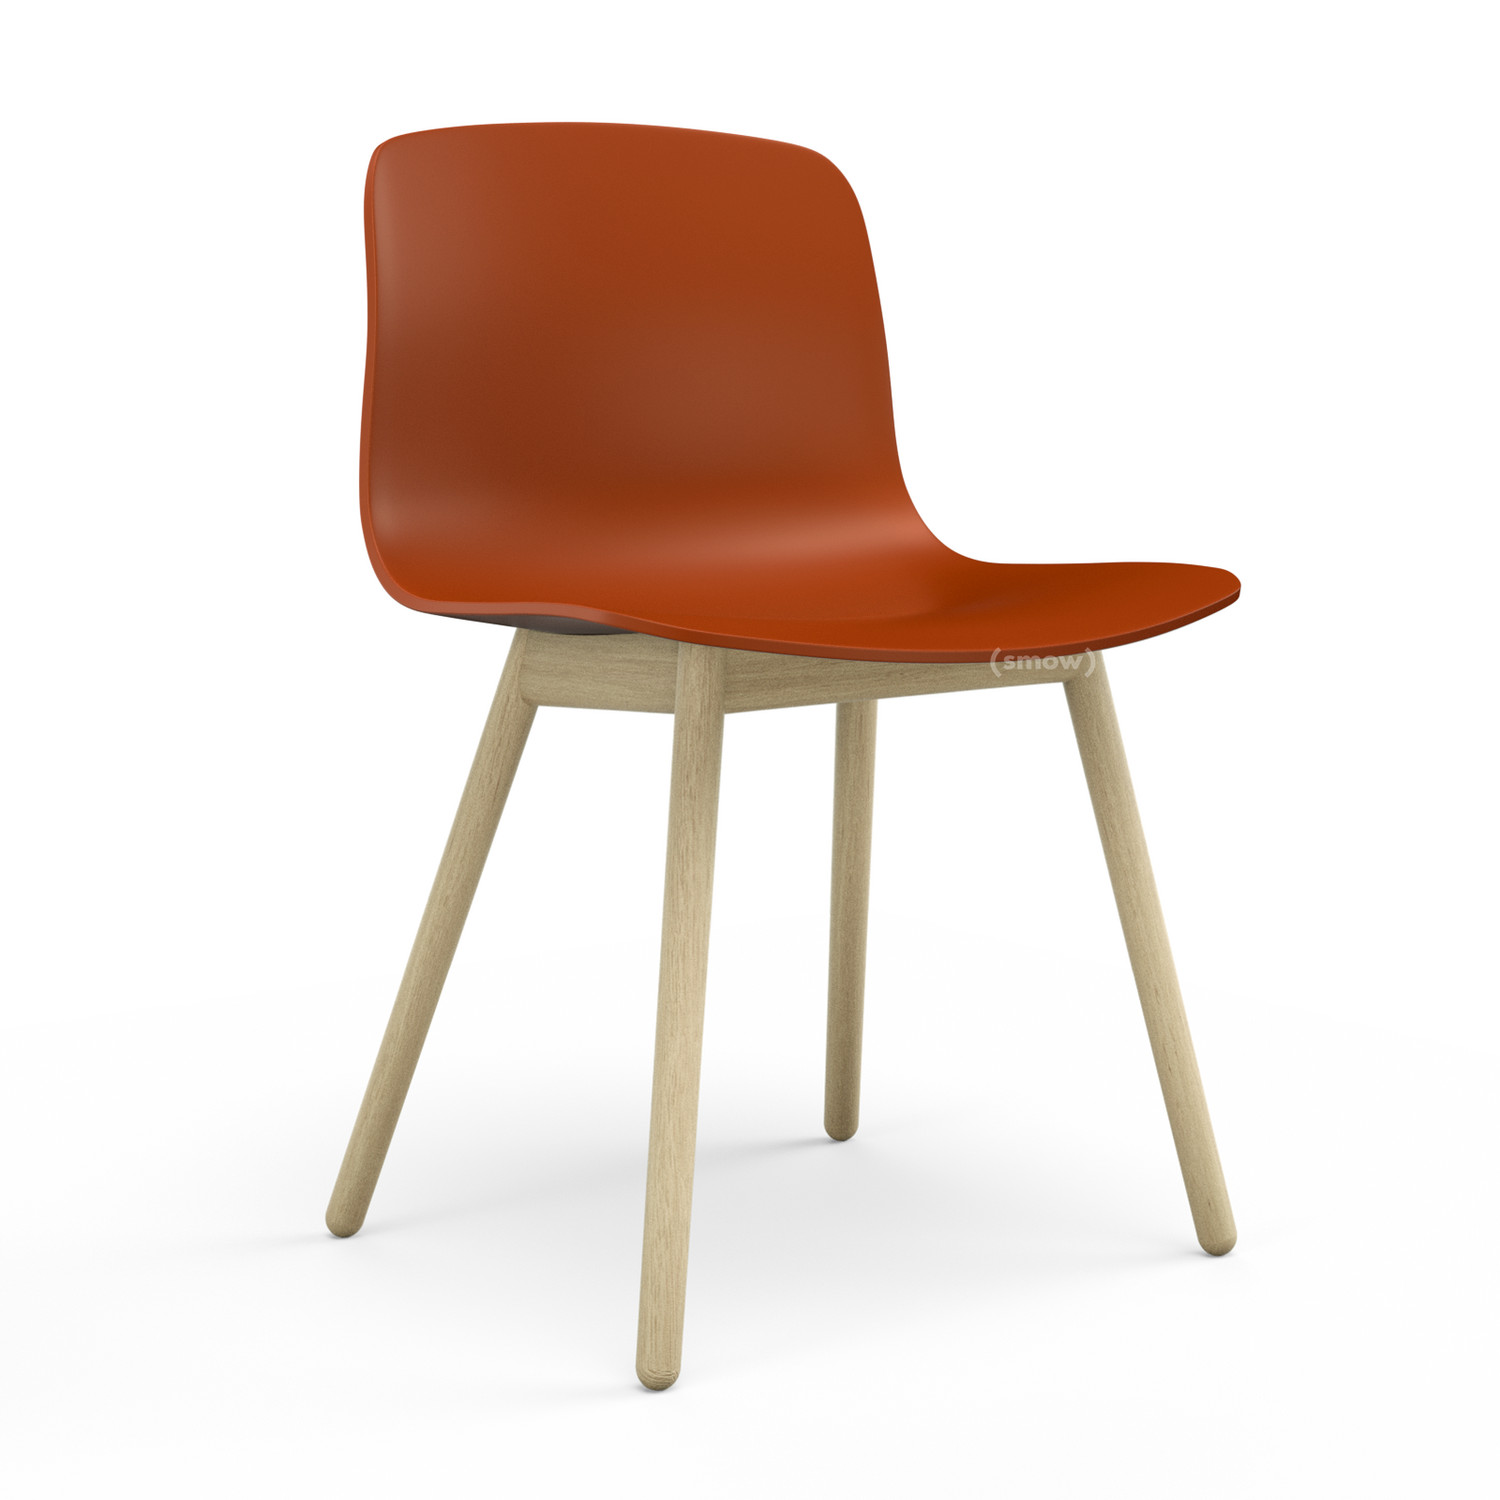 Hay About A Chair Aac 12 Orange Soap Treated Oak By Hee Welling Hay Designer Furniture By Smow Com